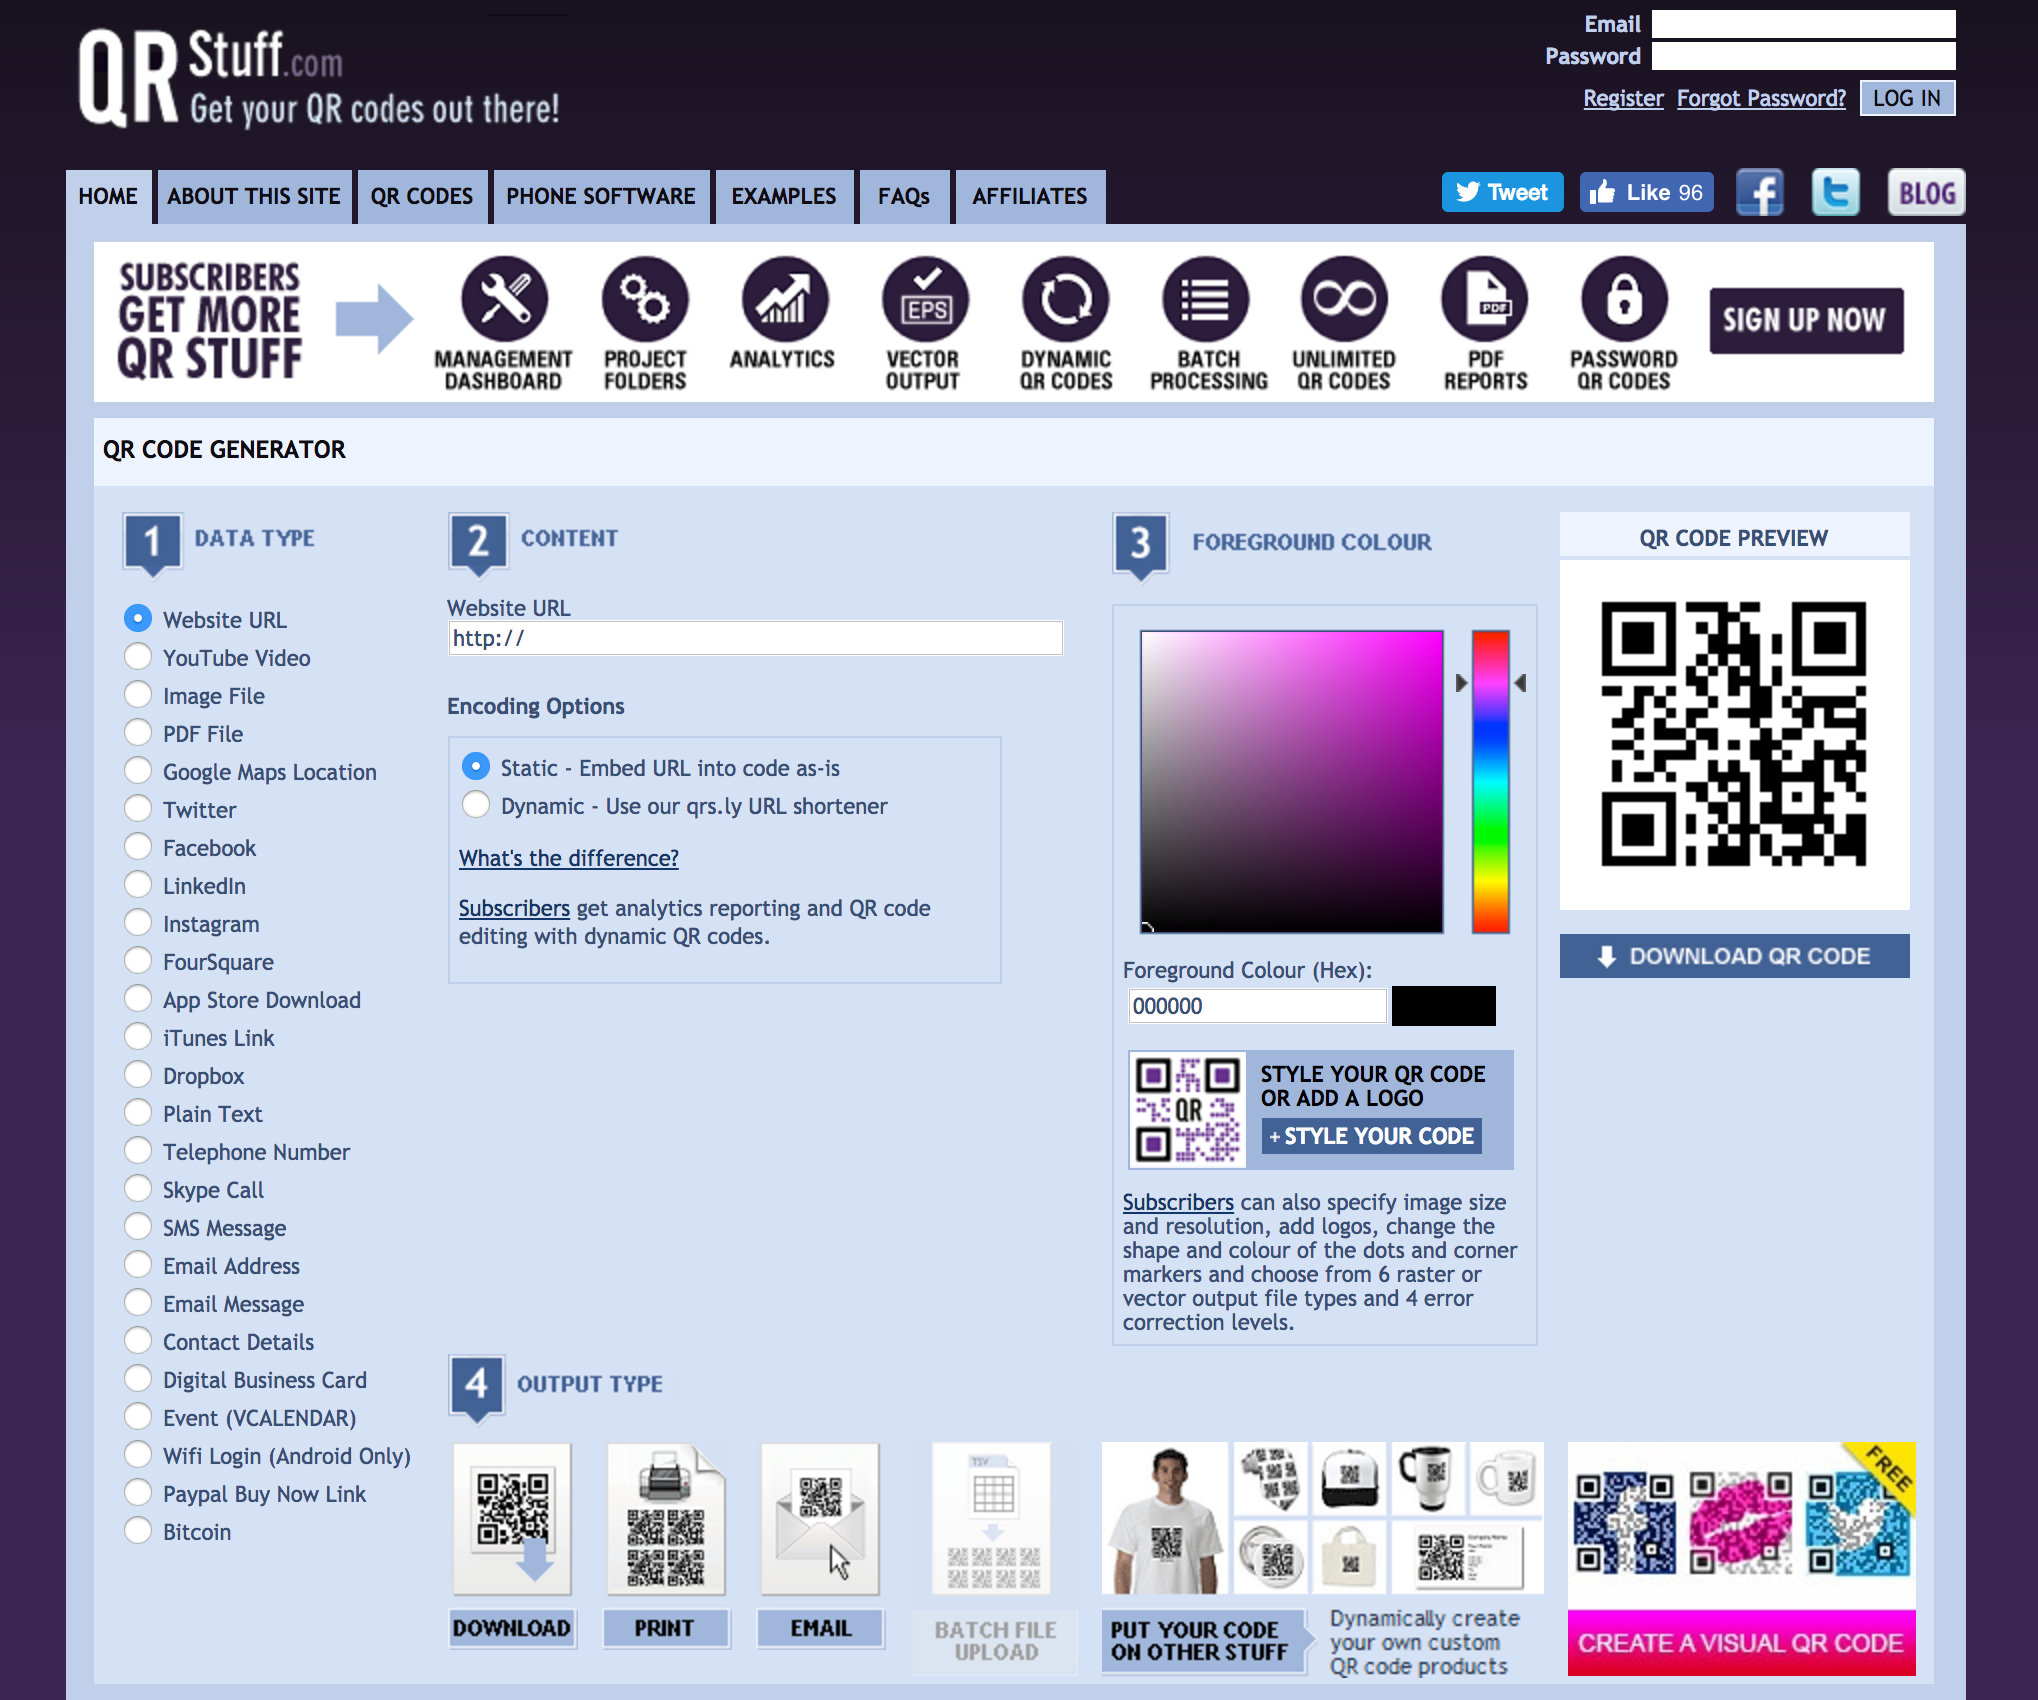 How do I create QR Codes? - Ask Dave Taylor